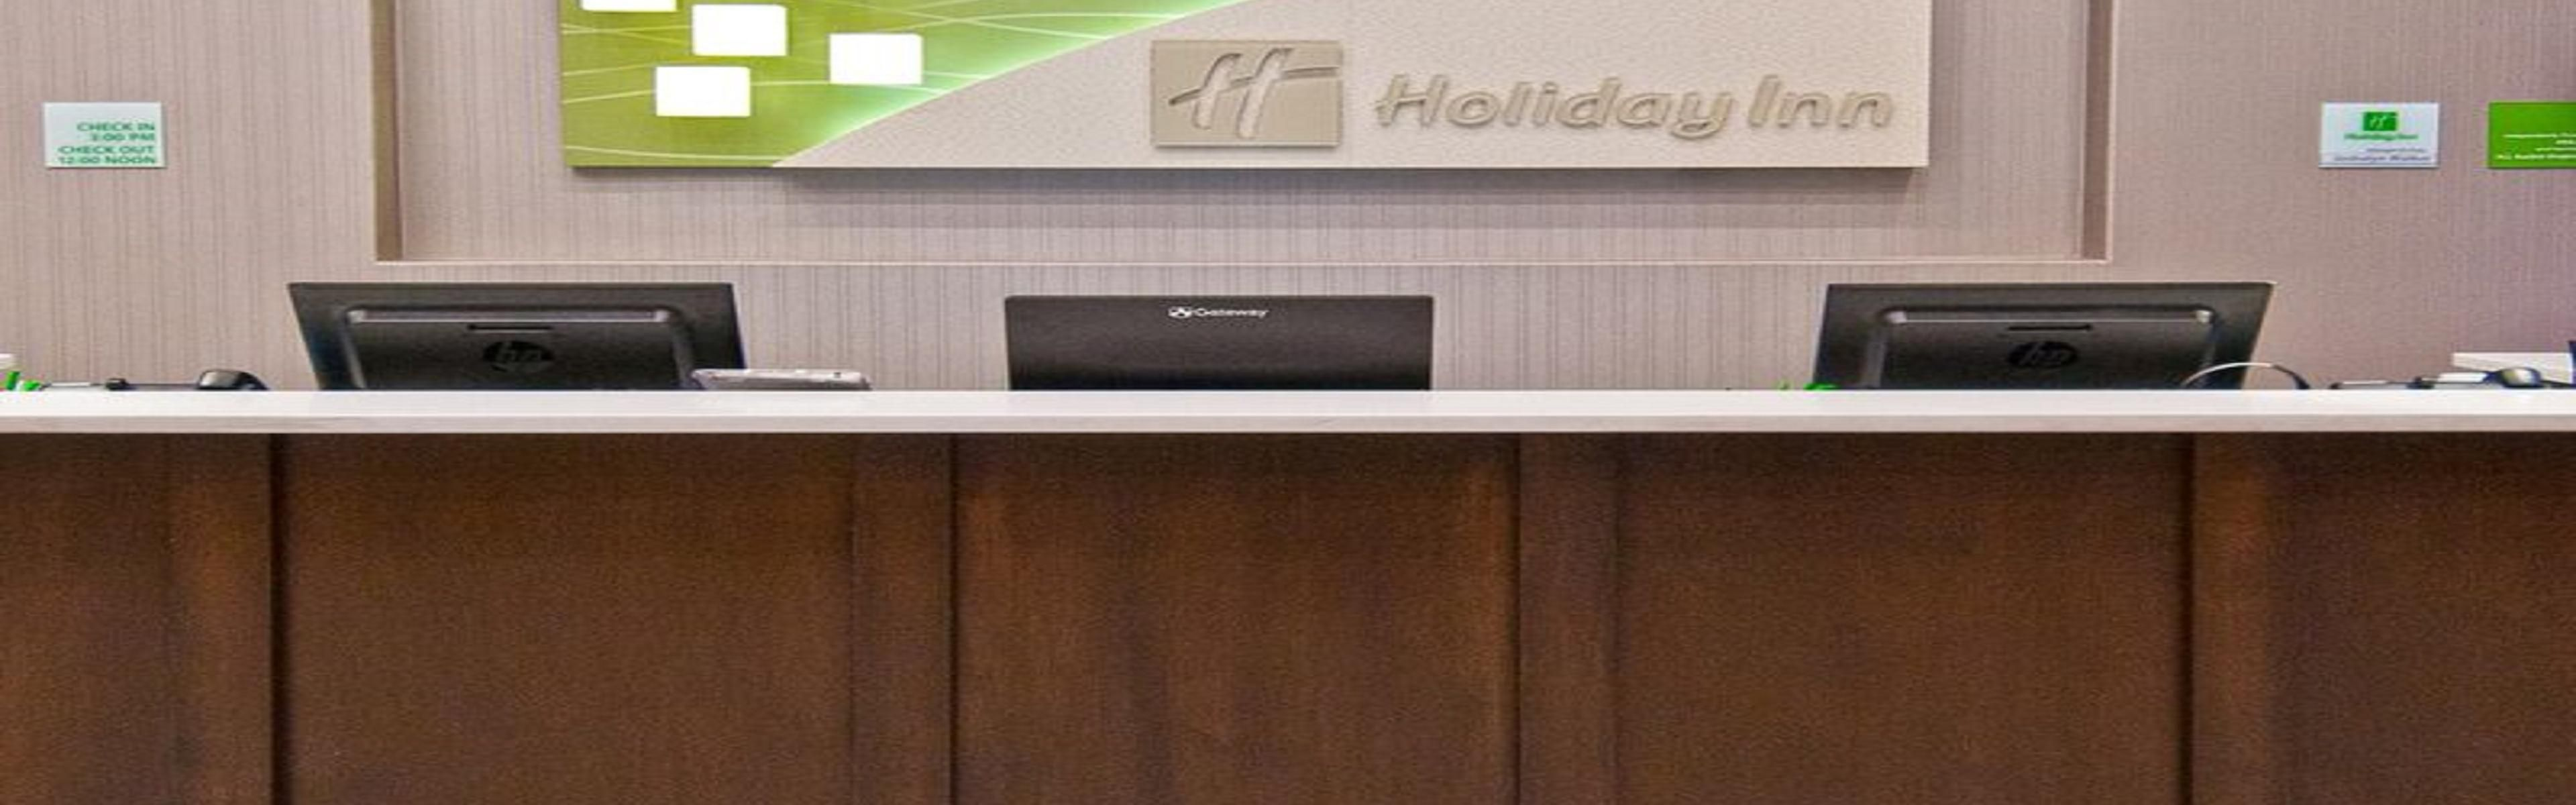 Holiday Inn Austin Airport image 0